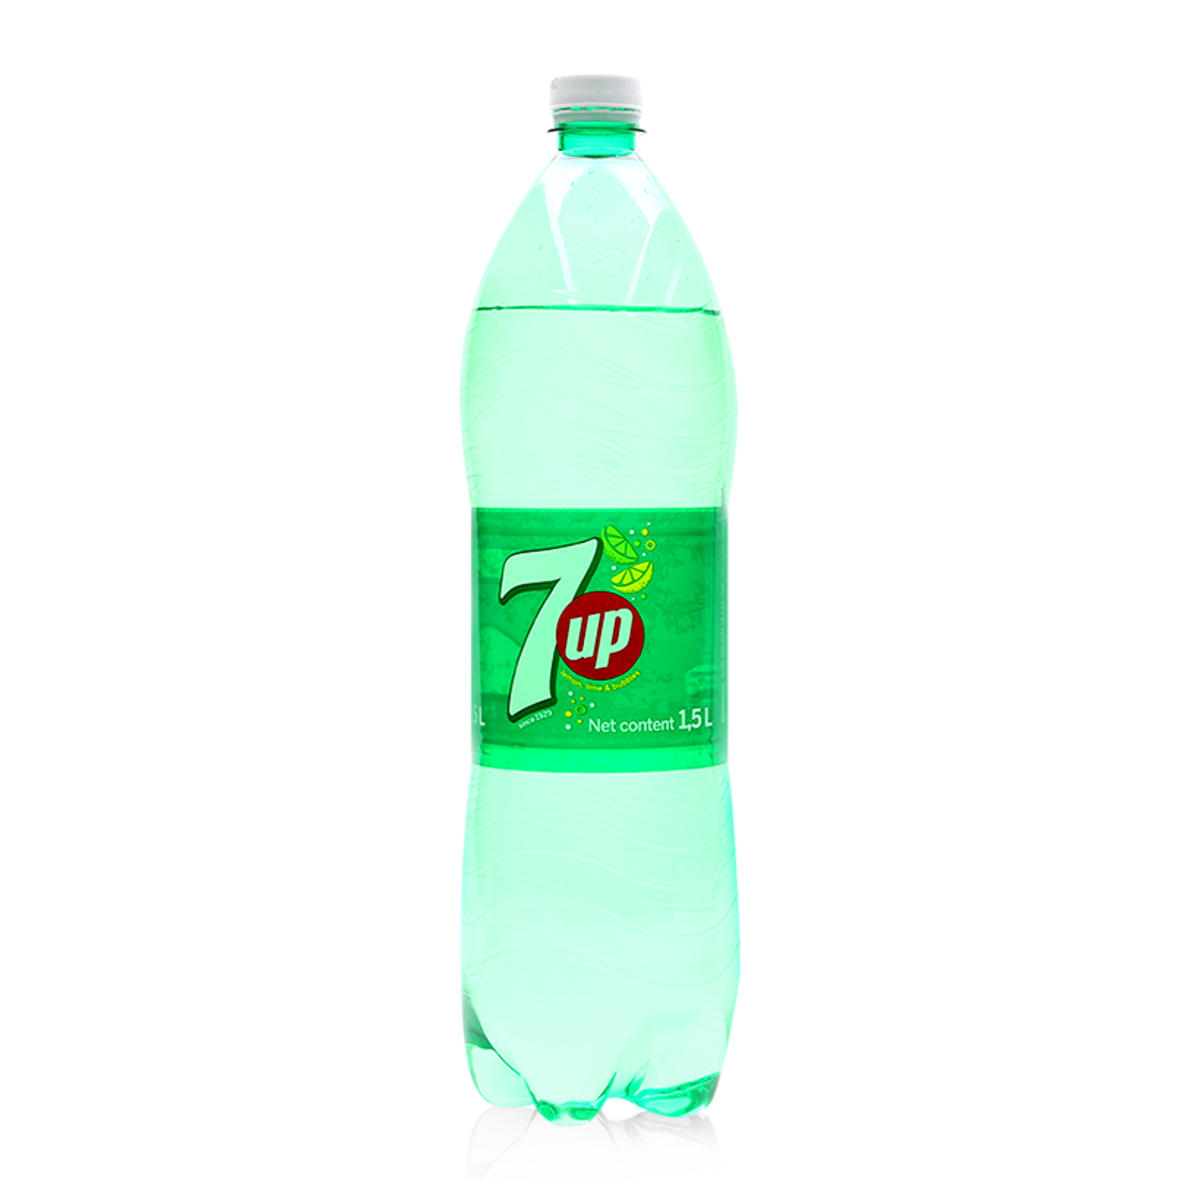 [THQ VIETNAM] 7 UP LIME SOFT DRINK PET 1.5L X 12 BTLS